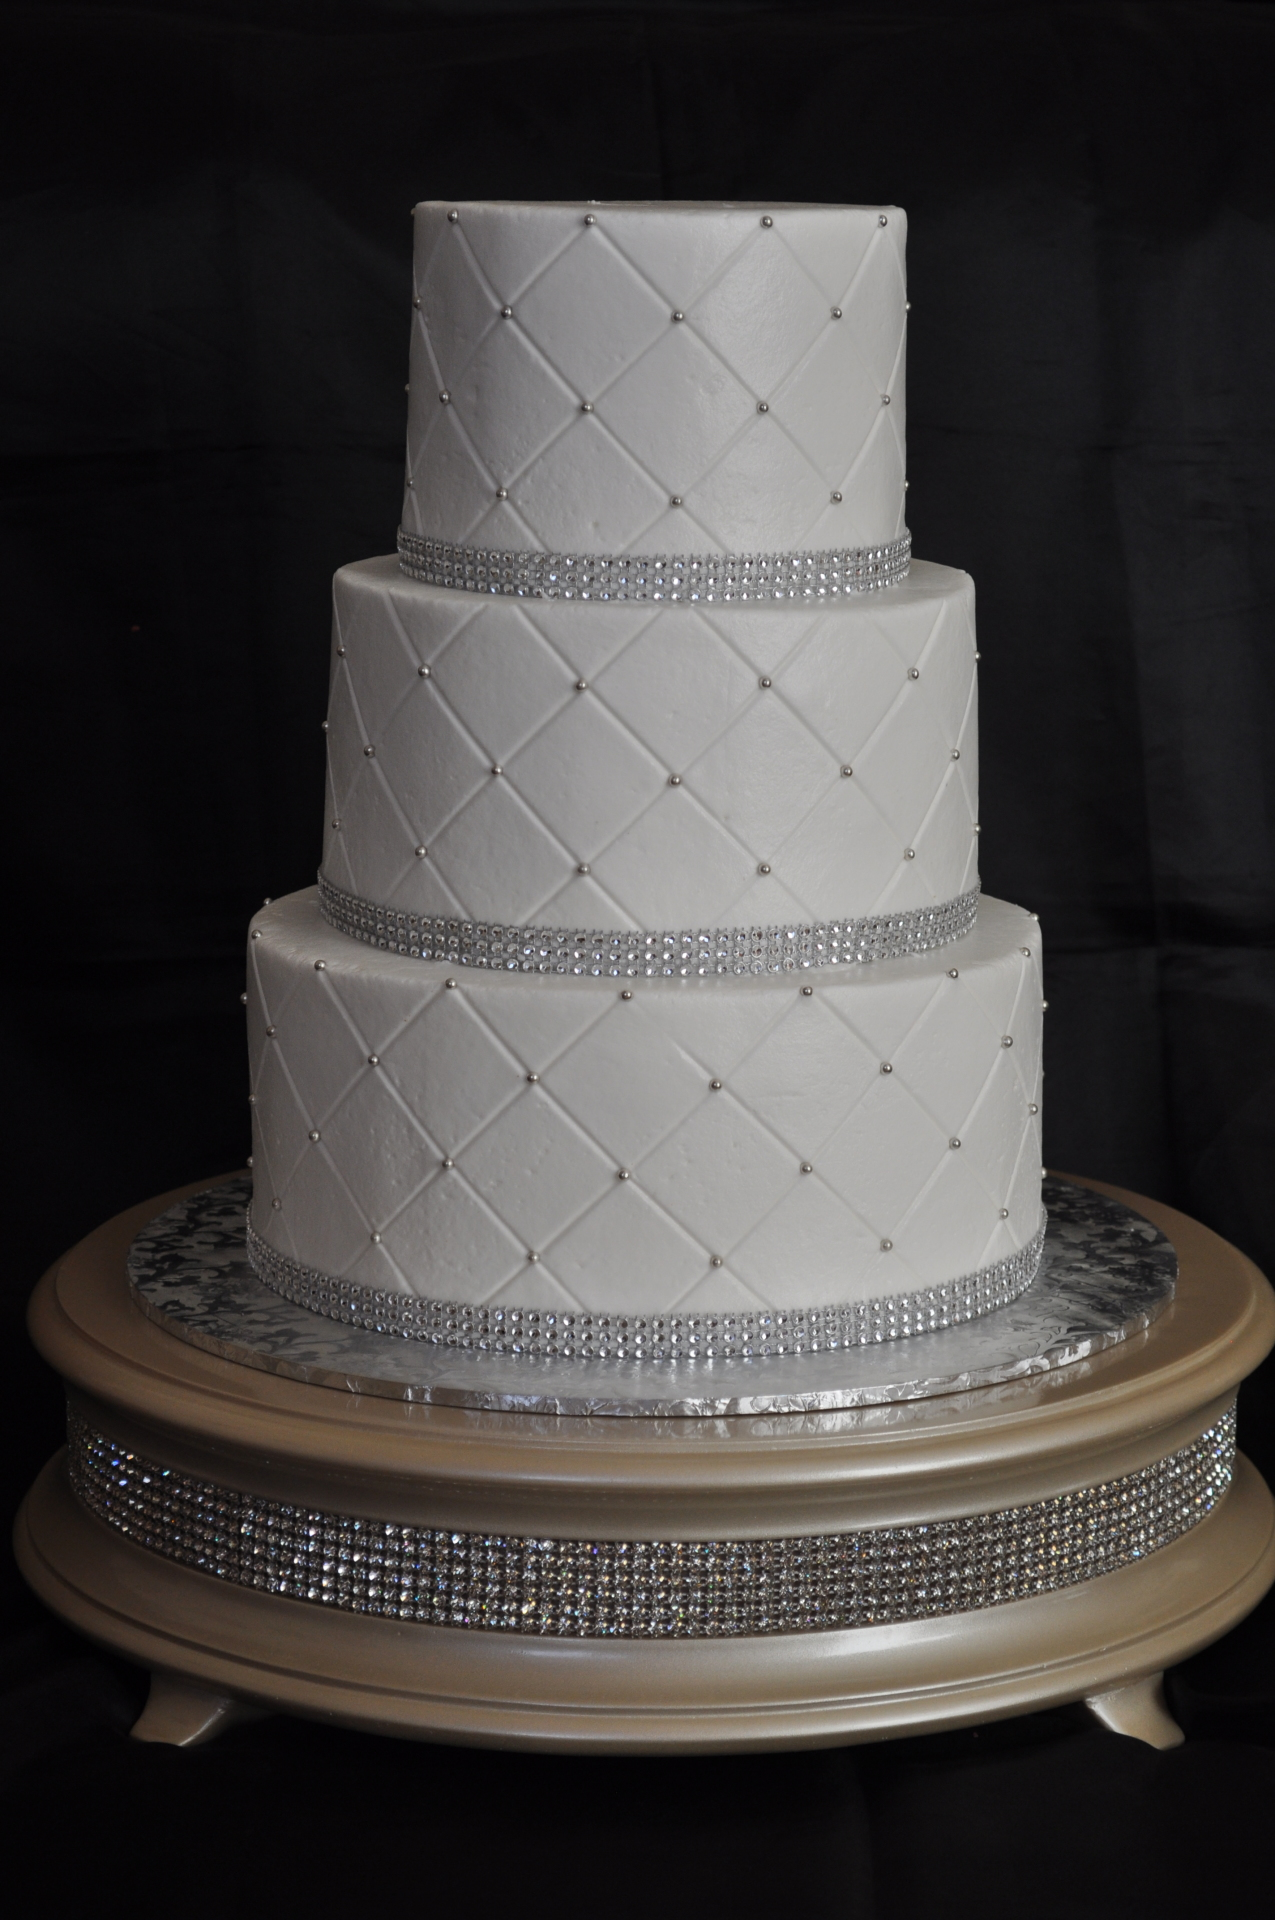 Simple quilted buttercream